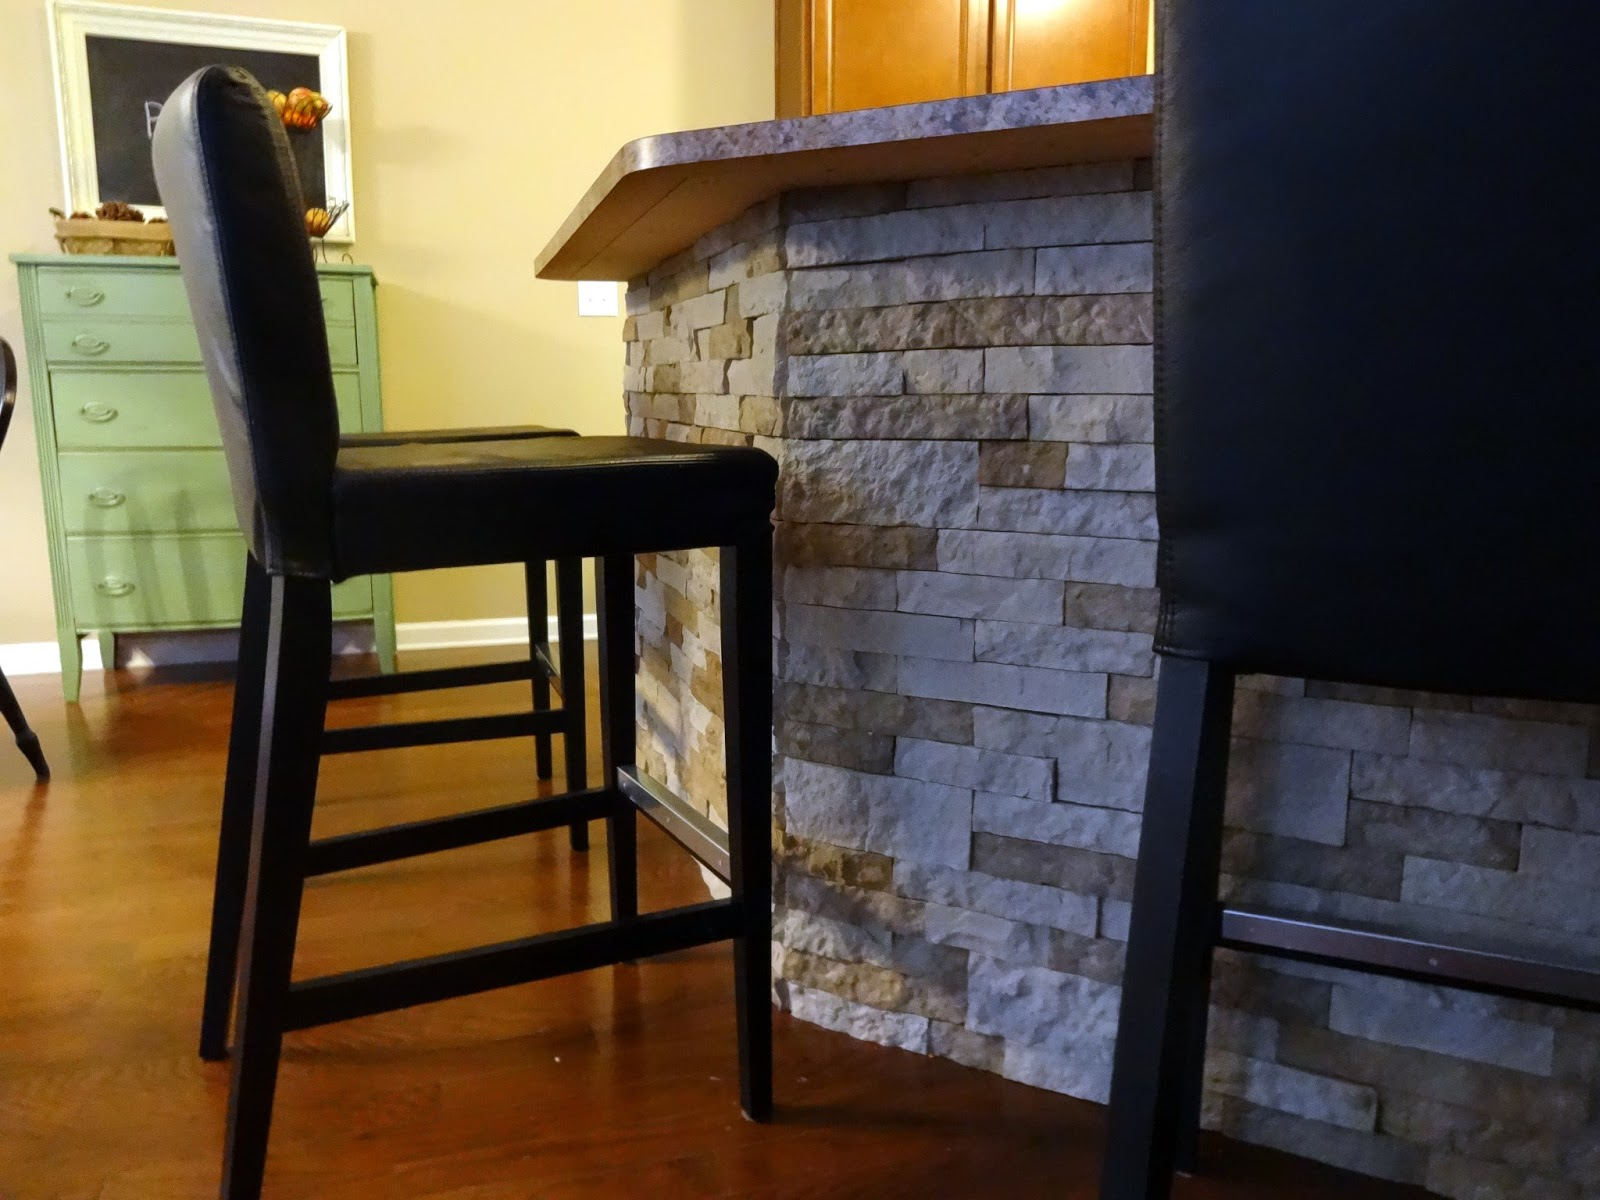 Airstone Lowes Our Life...: Airstone Bar Diy Upgrade